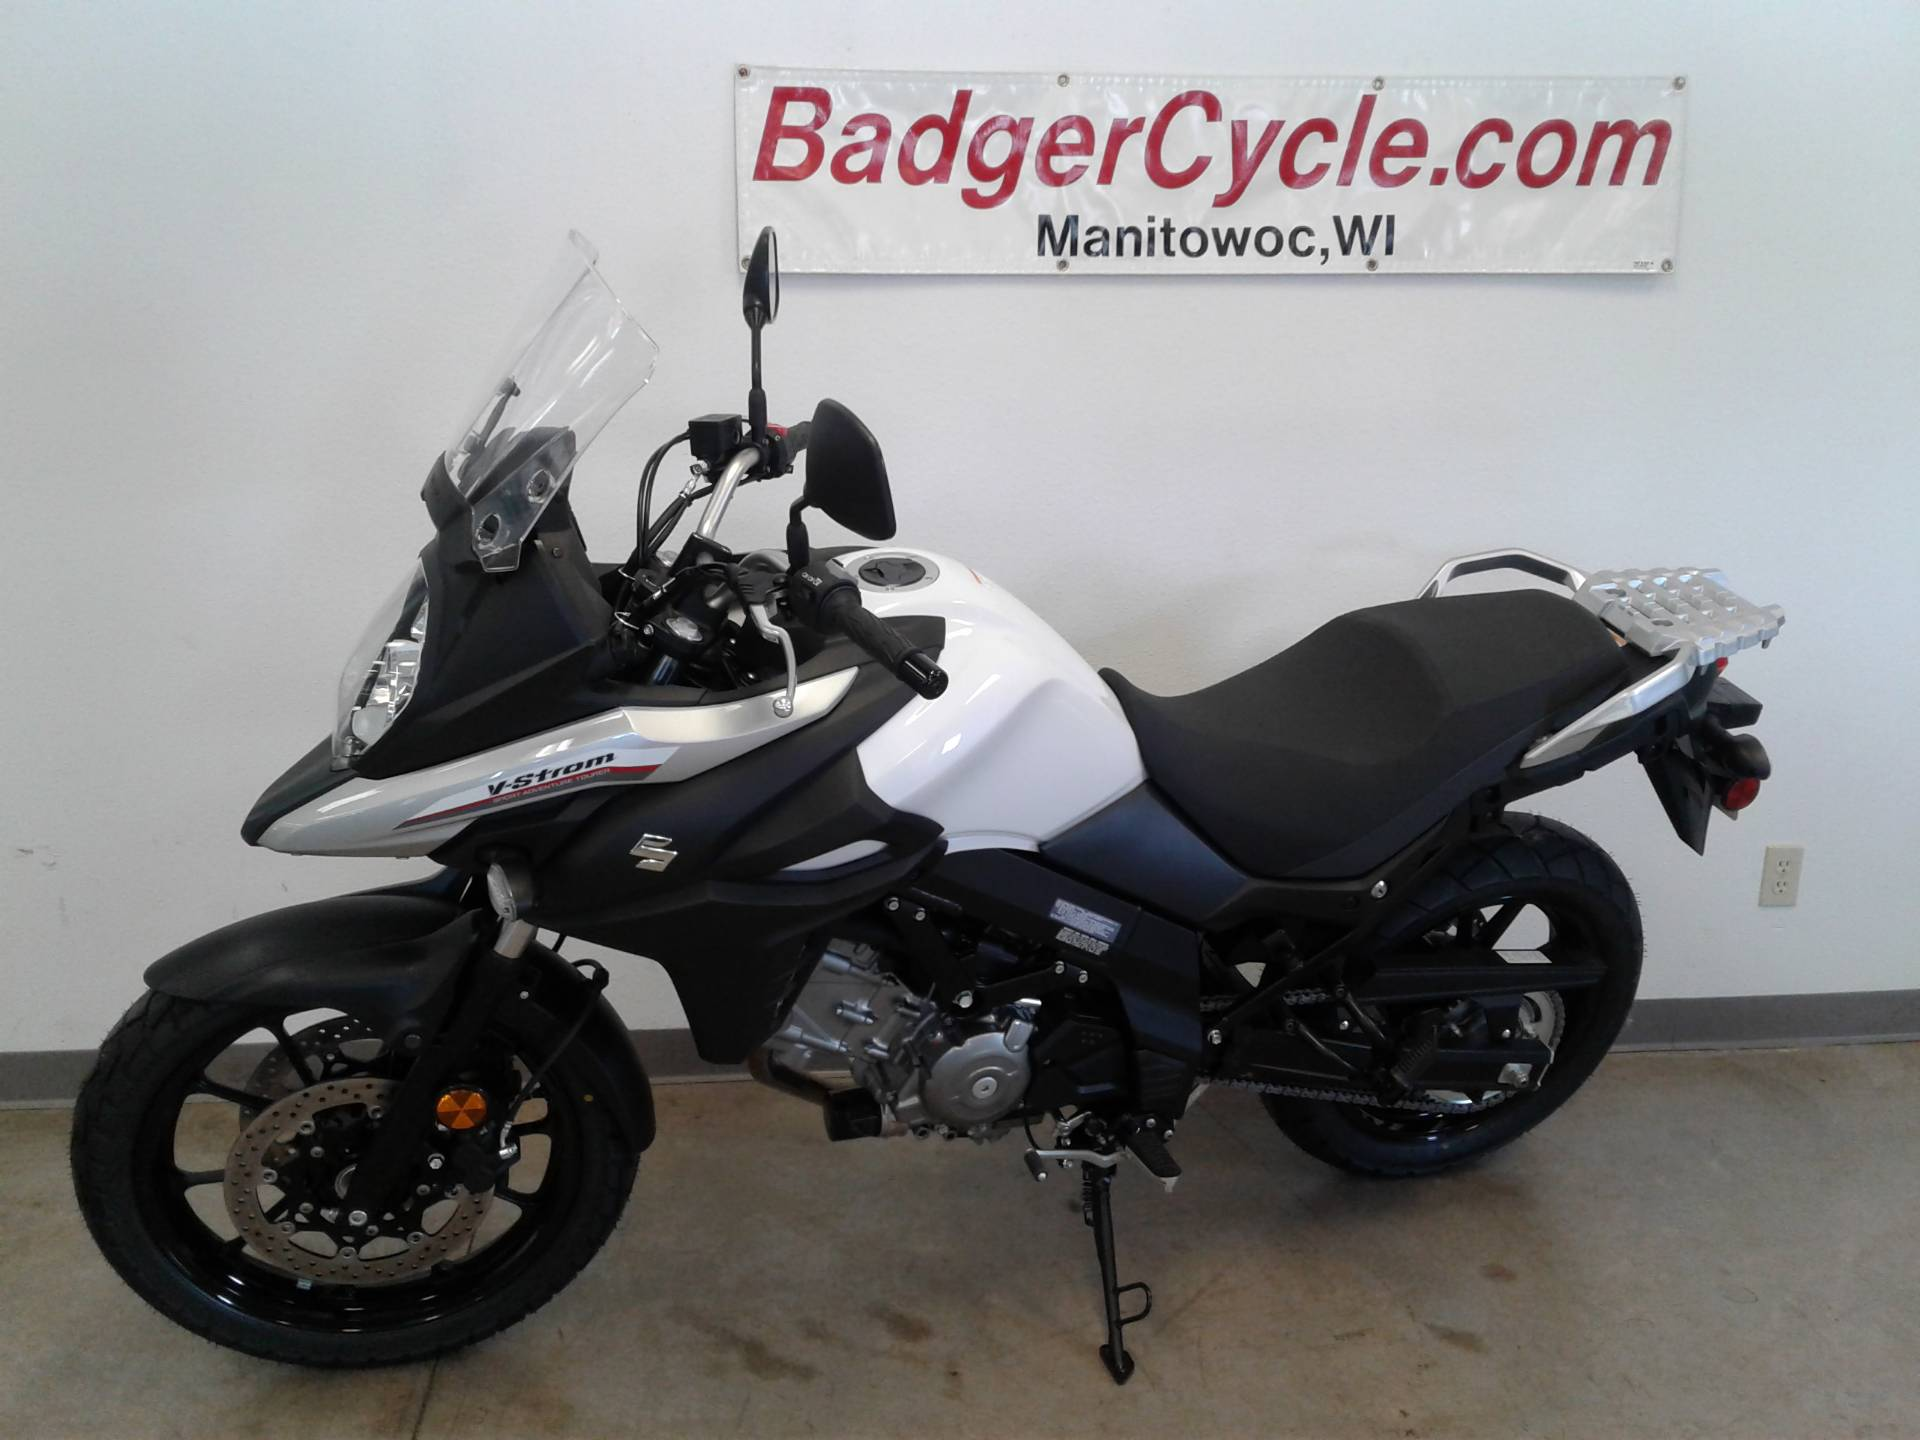 2017 Suzuki V-Strom 650 in Manitowoc, Wisconsin - Photo 2